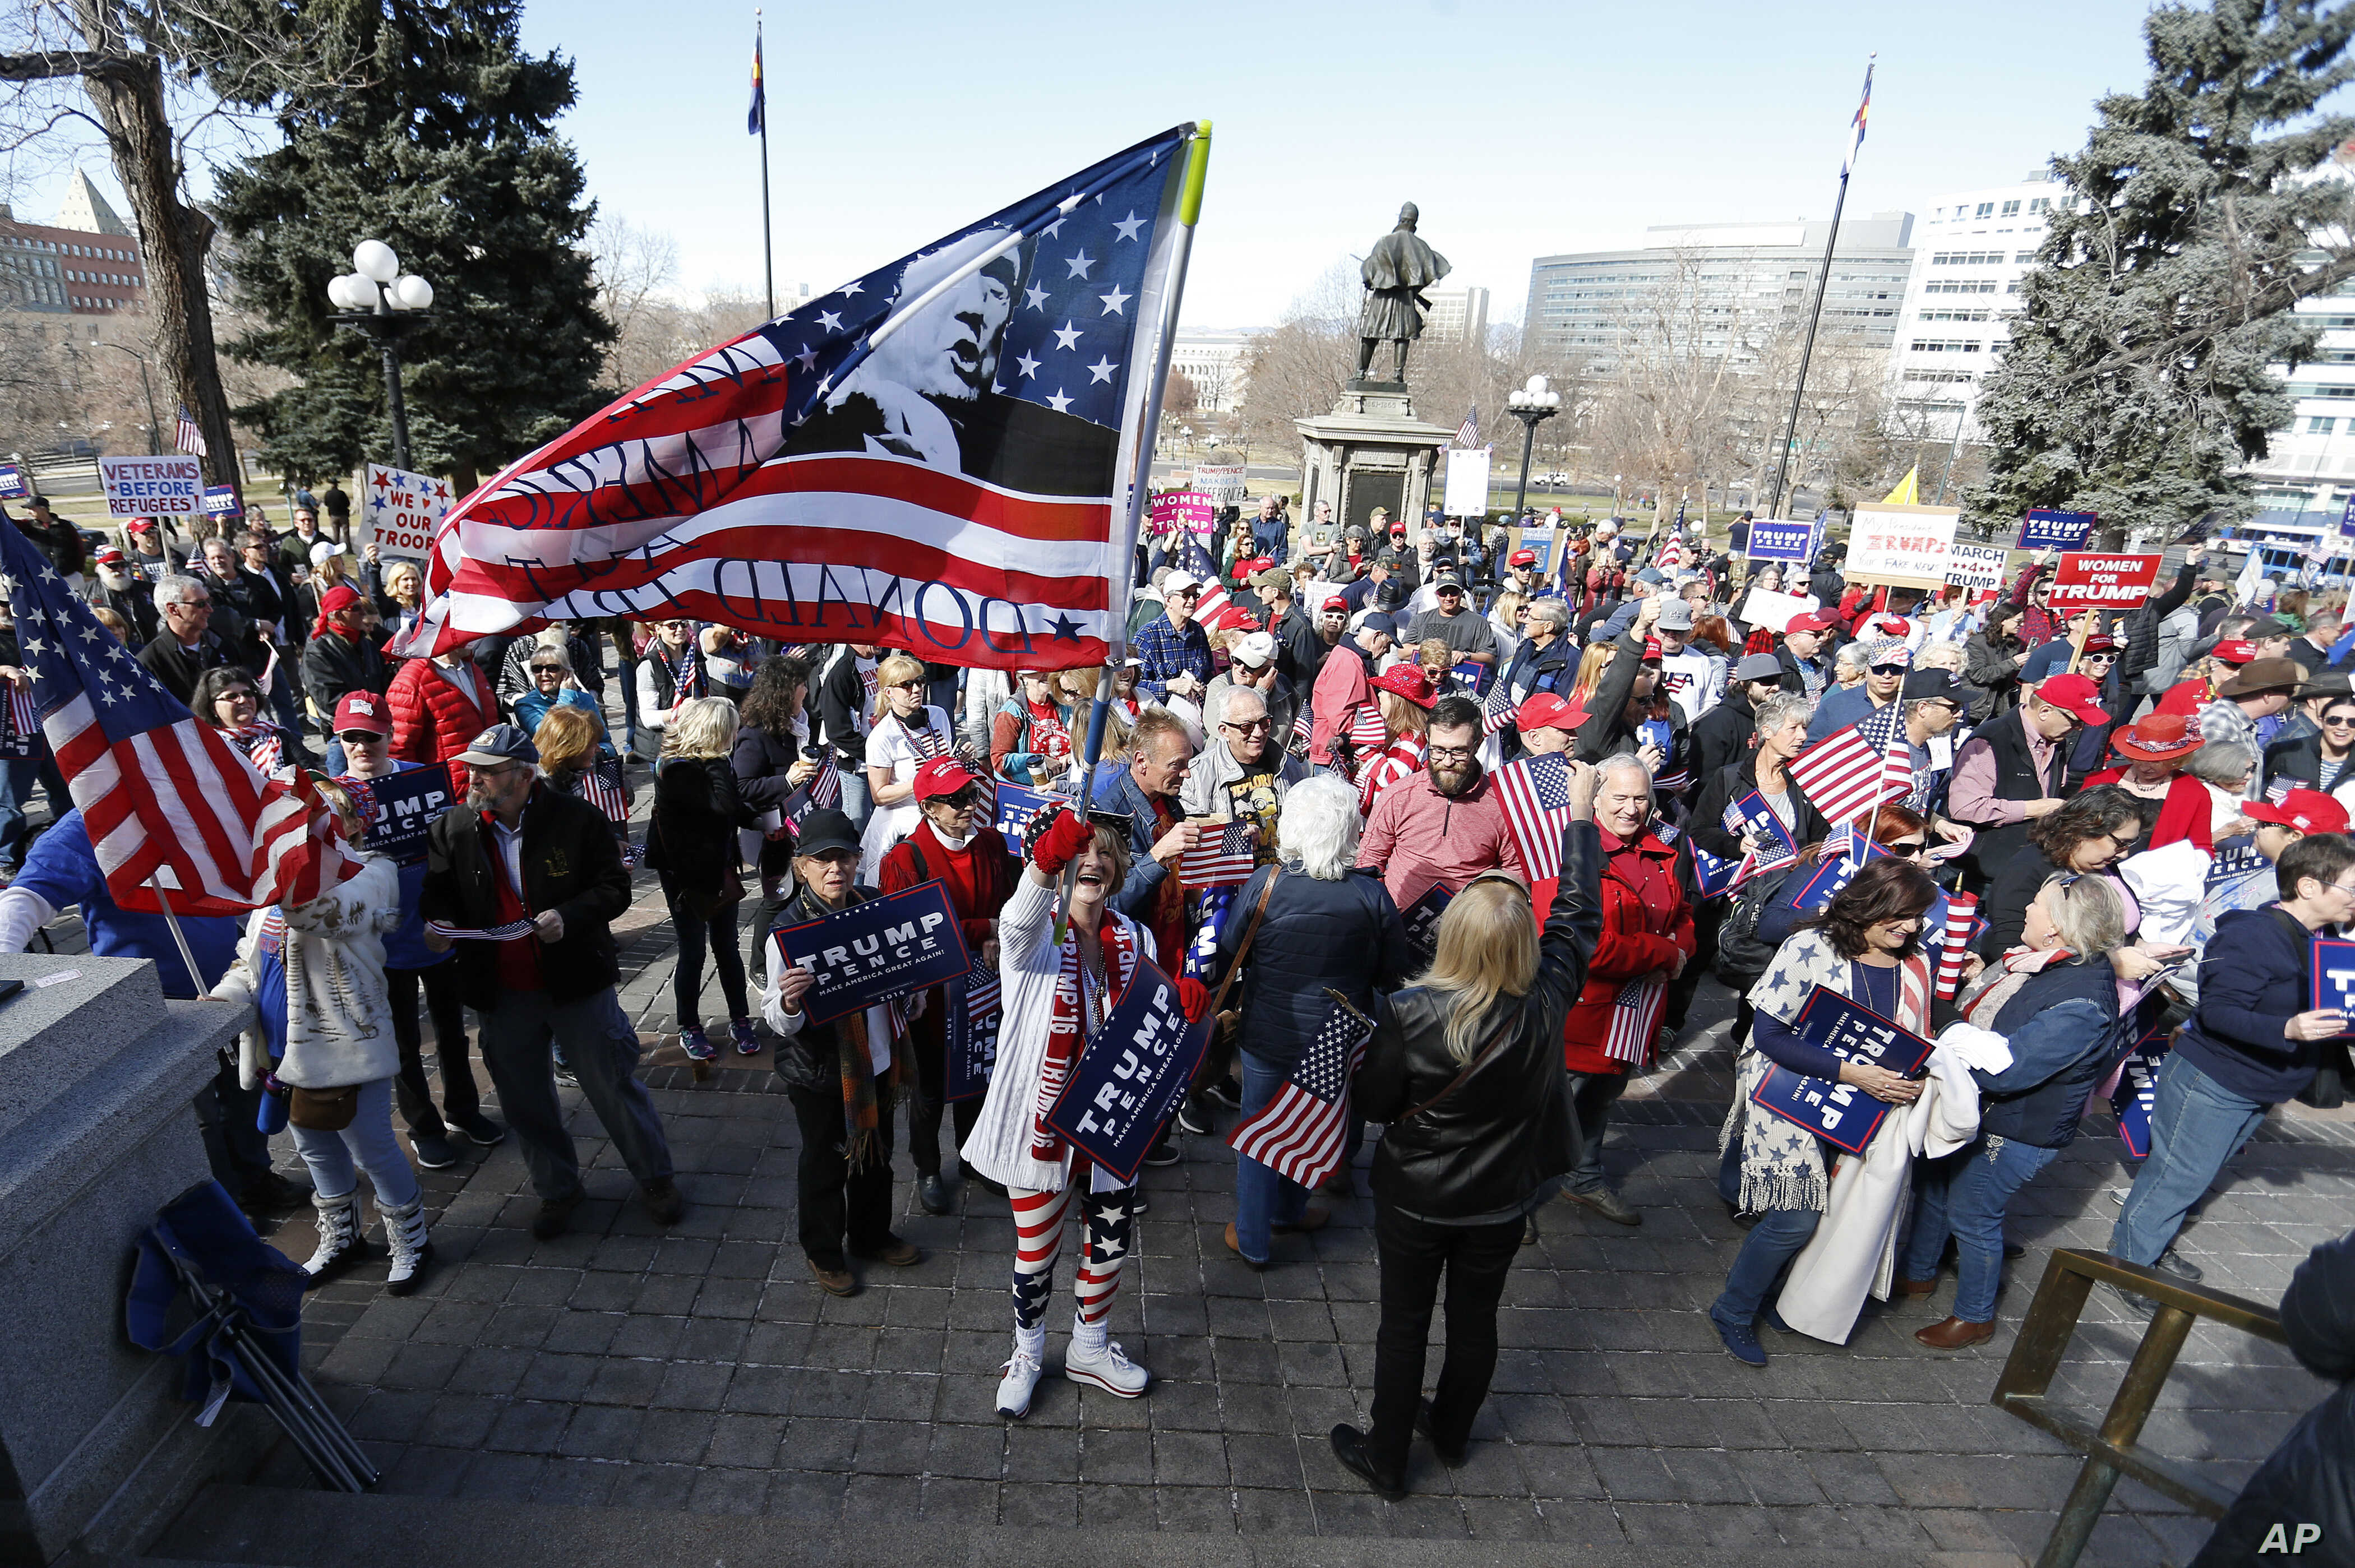 Supporters of President Donald Trump gather during a March 4 Trump rally on the state Capitol steps in Denver, March 4, 2017.